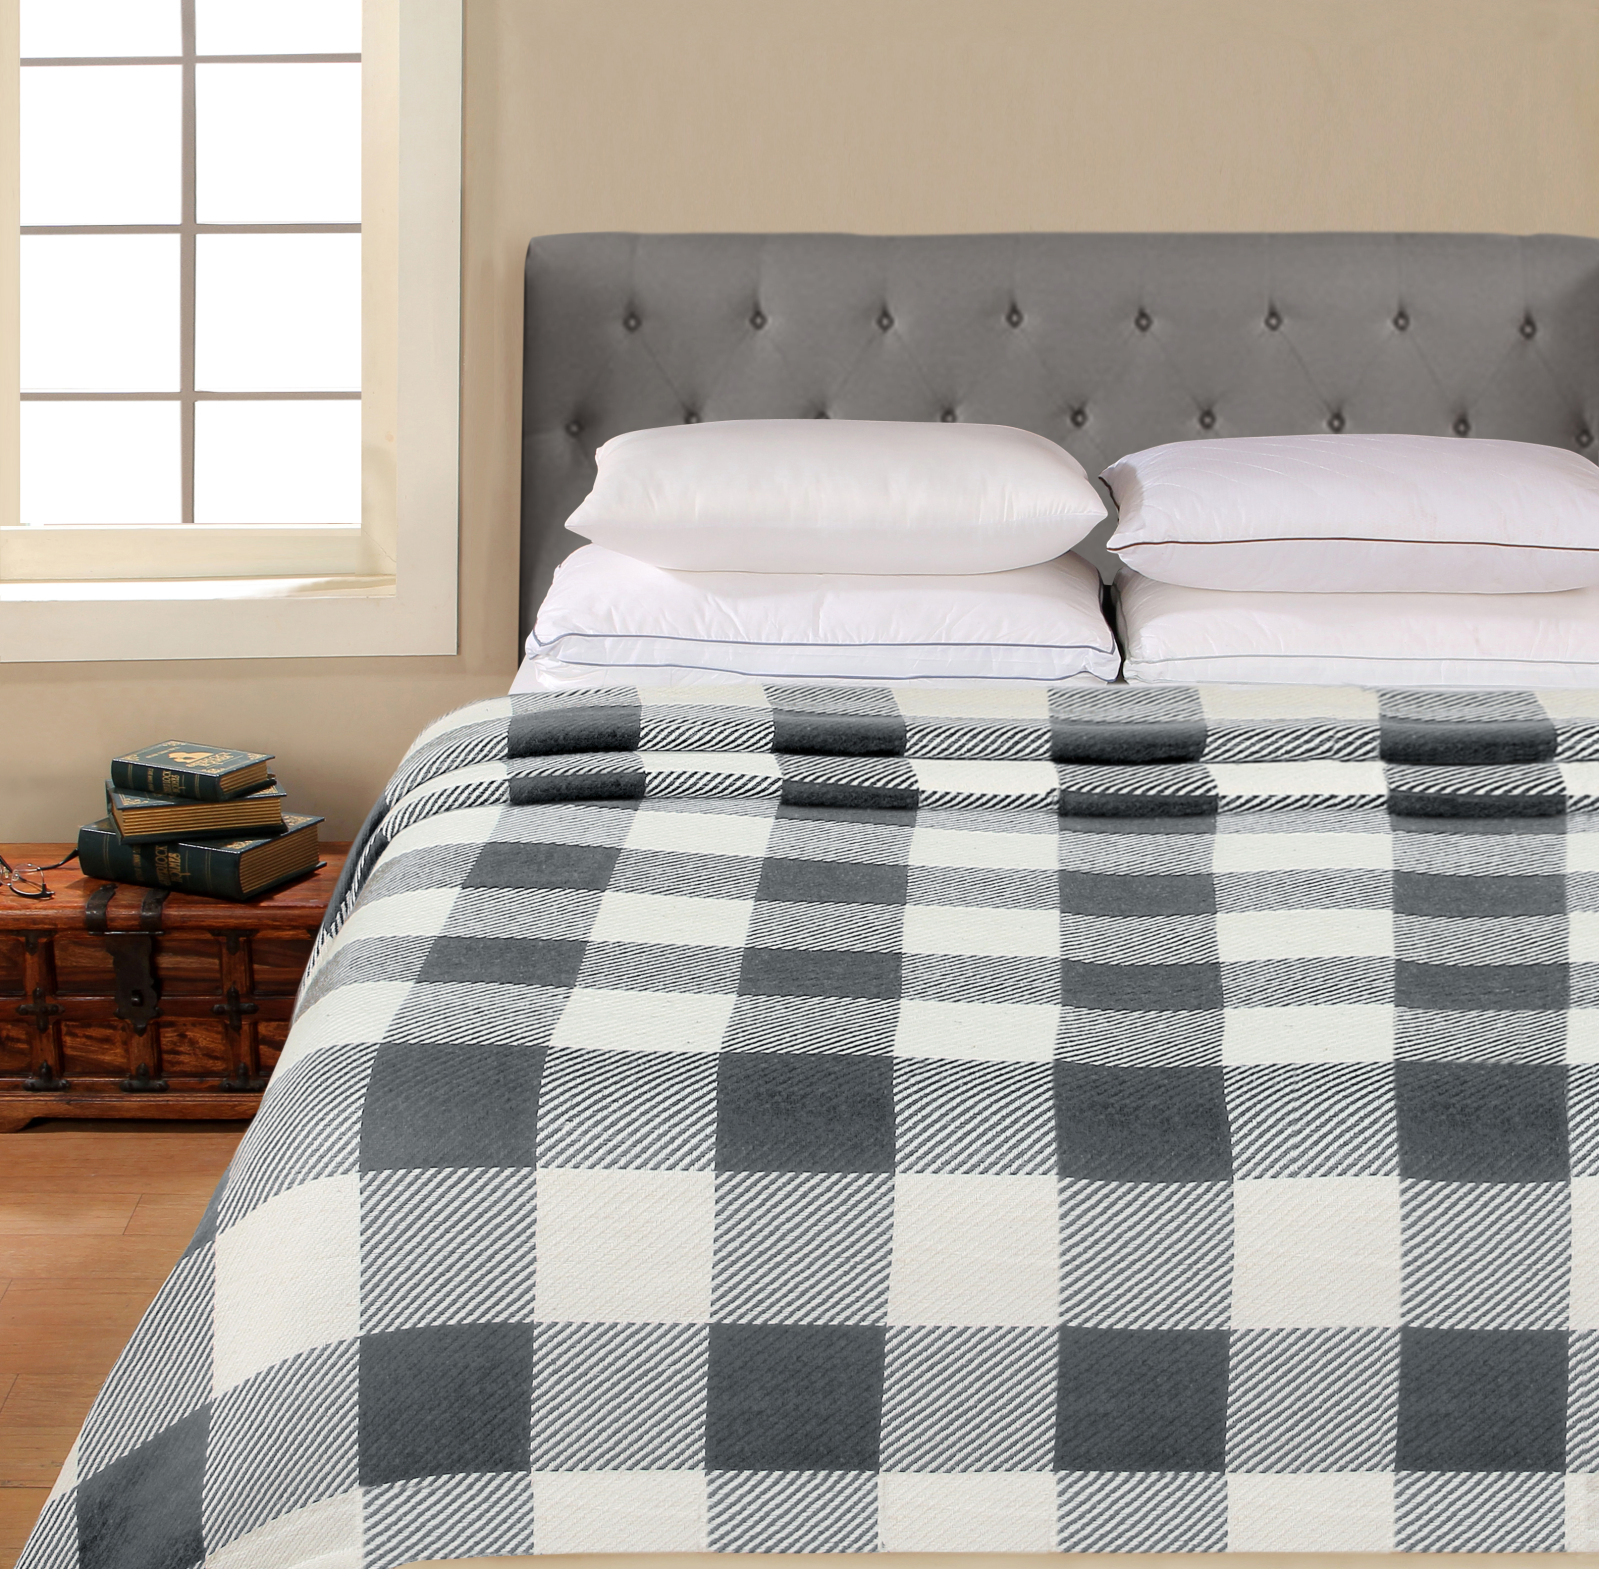 Better Homes & Gardens Cotton Buffalo Plaid Blanket, Grey Full/Queen